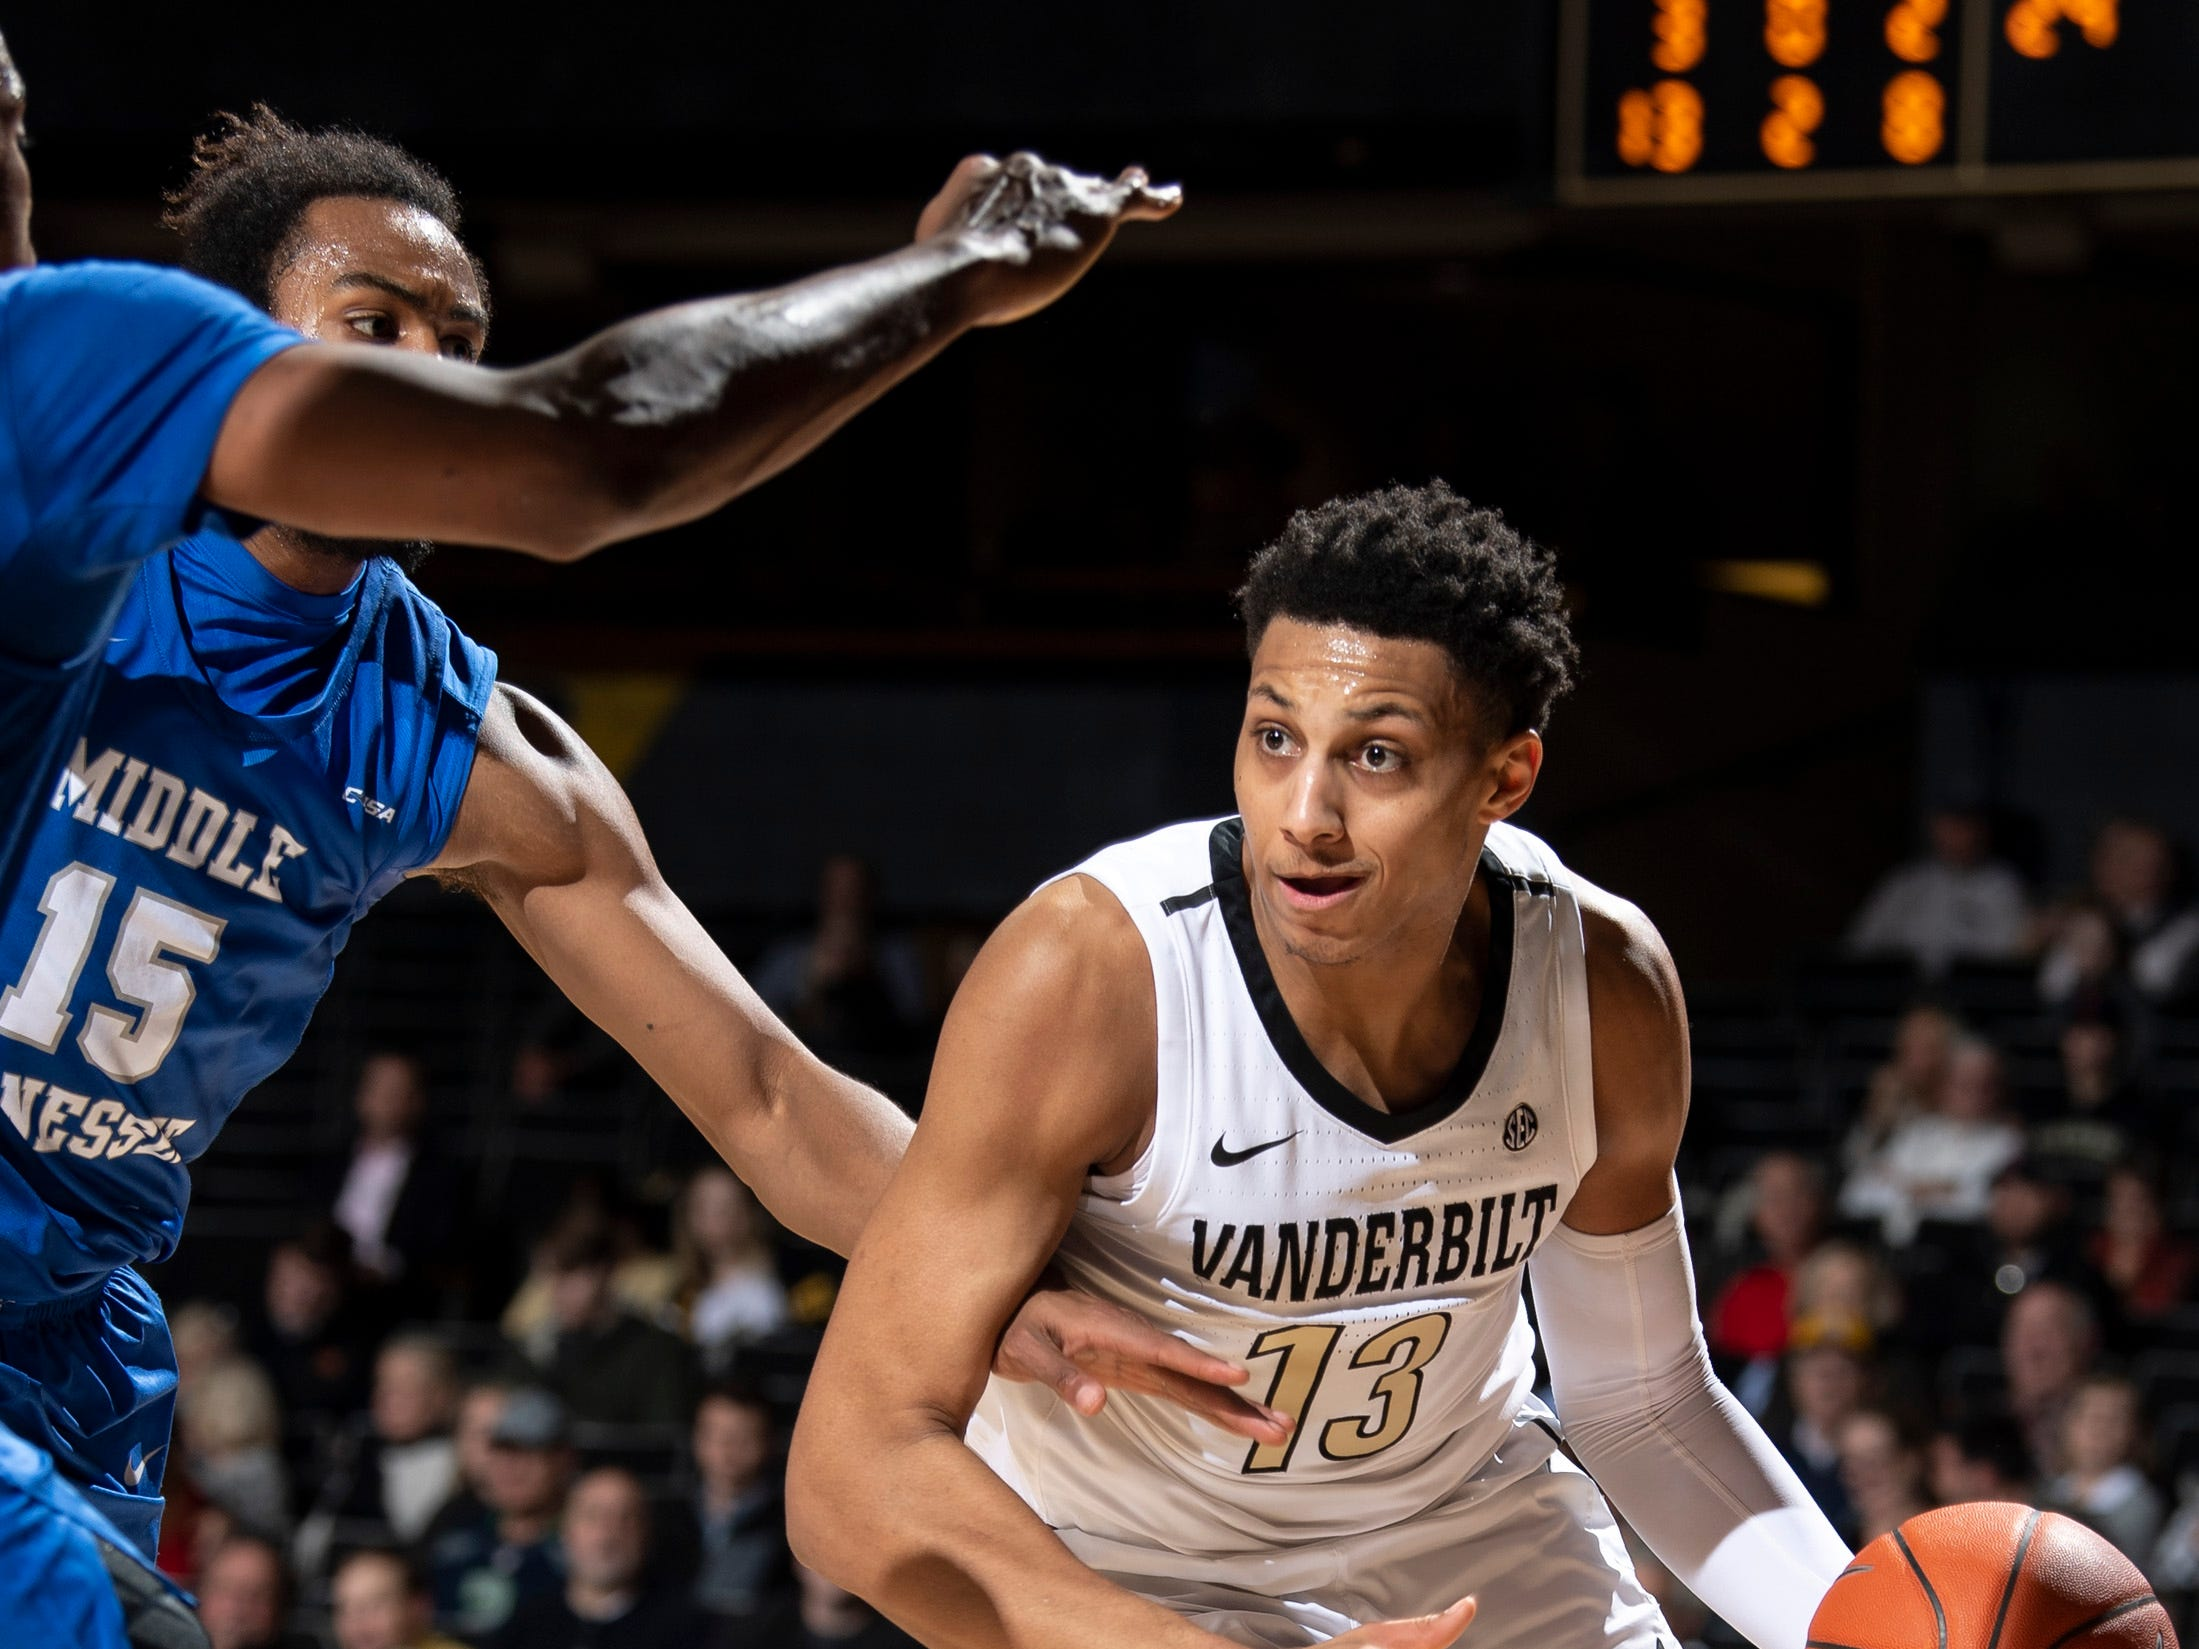 Vanderbilt forward Matthew Moyer (13) advances into MTSU forward TJ Massenburg (15) during the first half at Memorial Gym in Nashville, Tenn., Wednesday, Dec. 5, 2018.